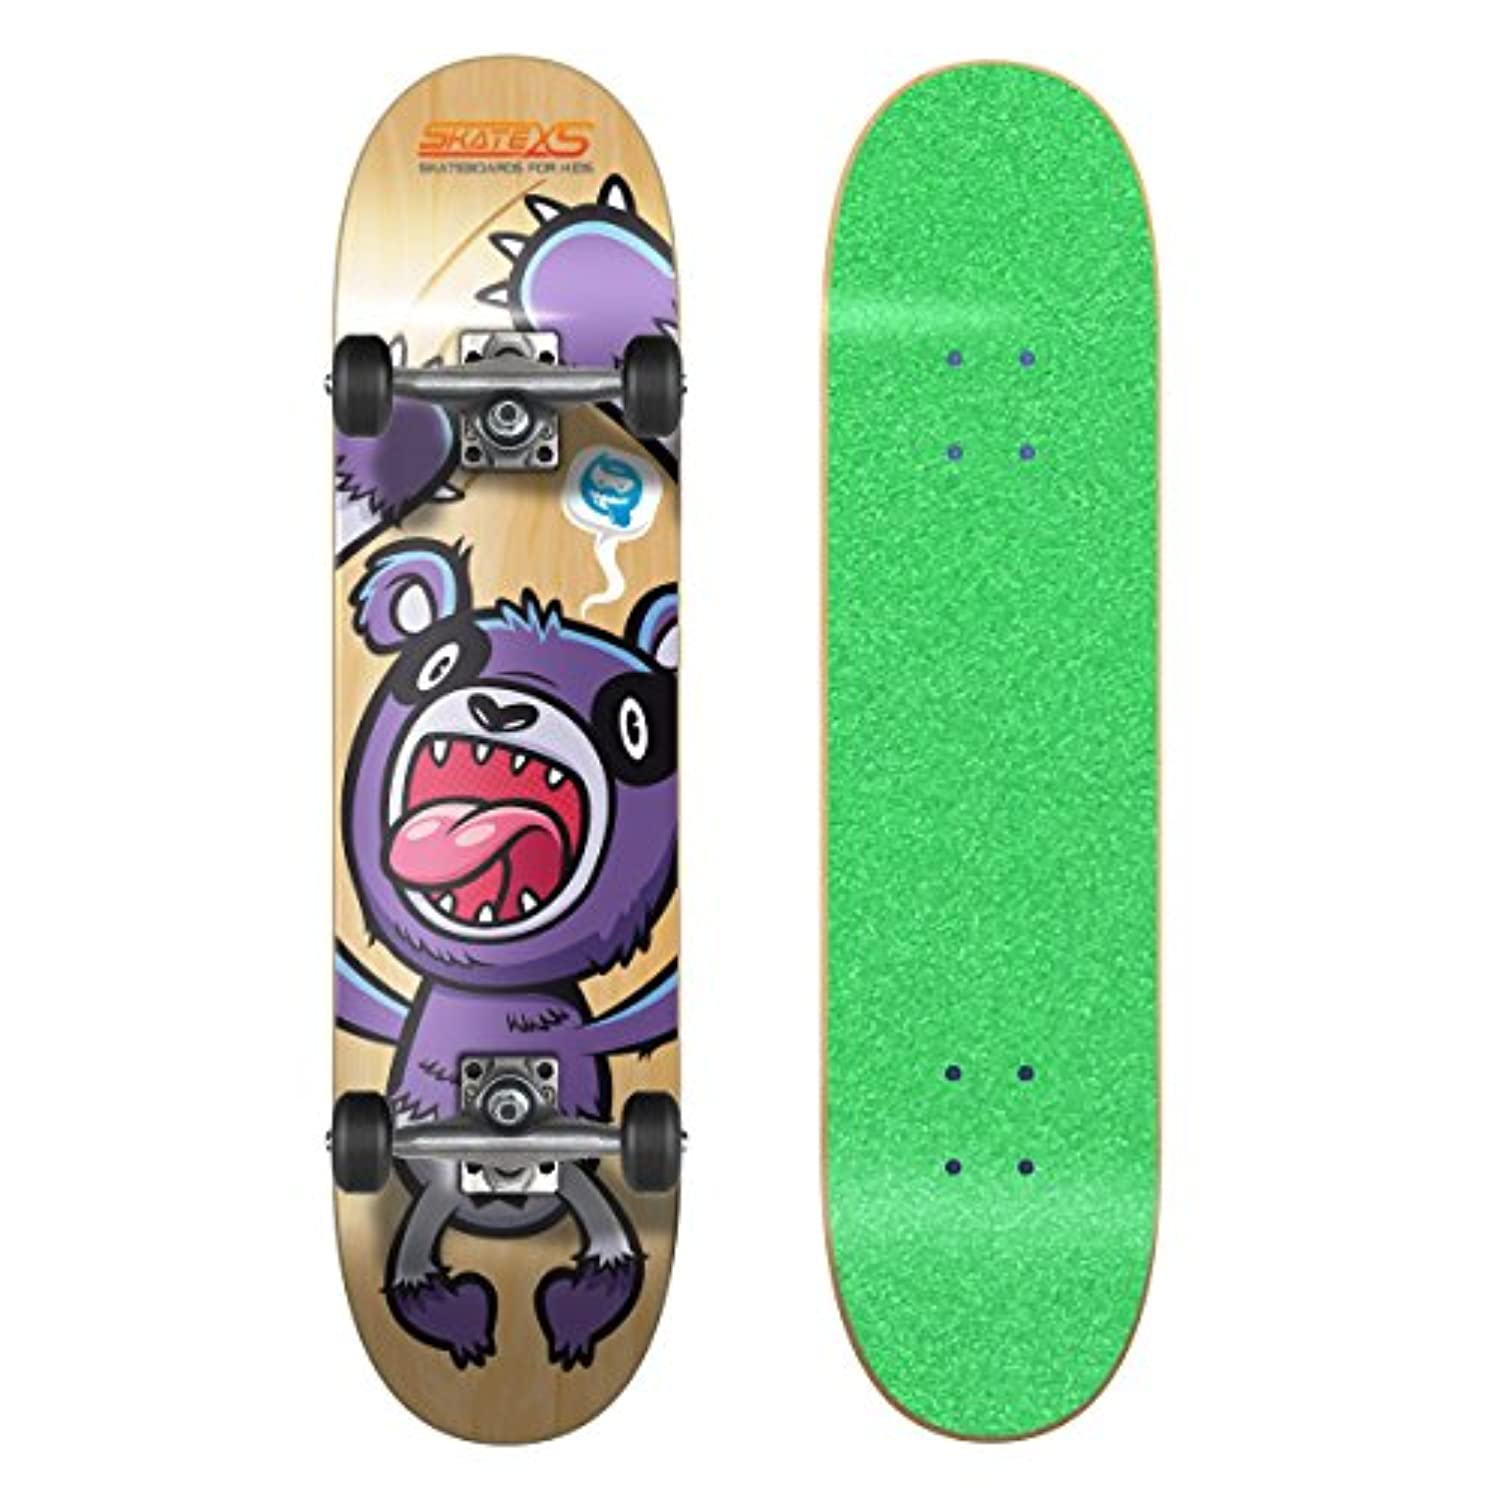 SkateXS Beginner Panda Street Skateboard - Green Grip